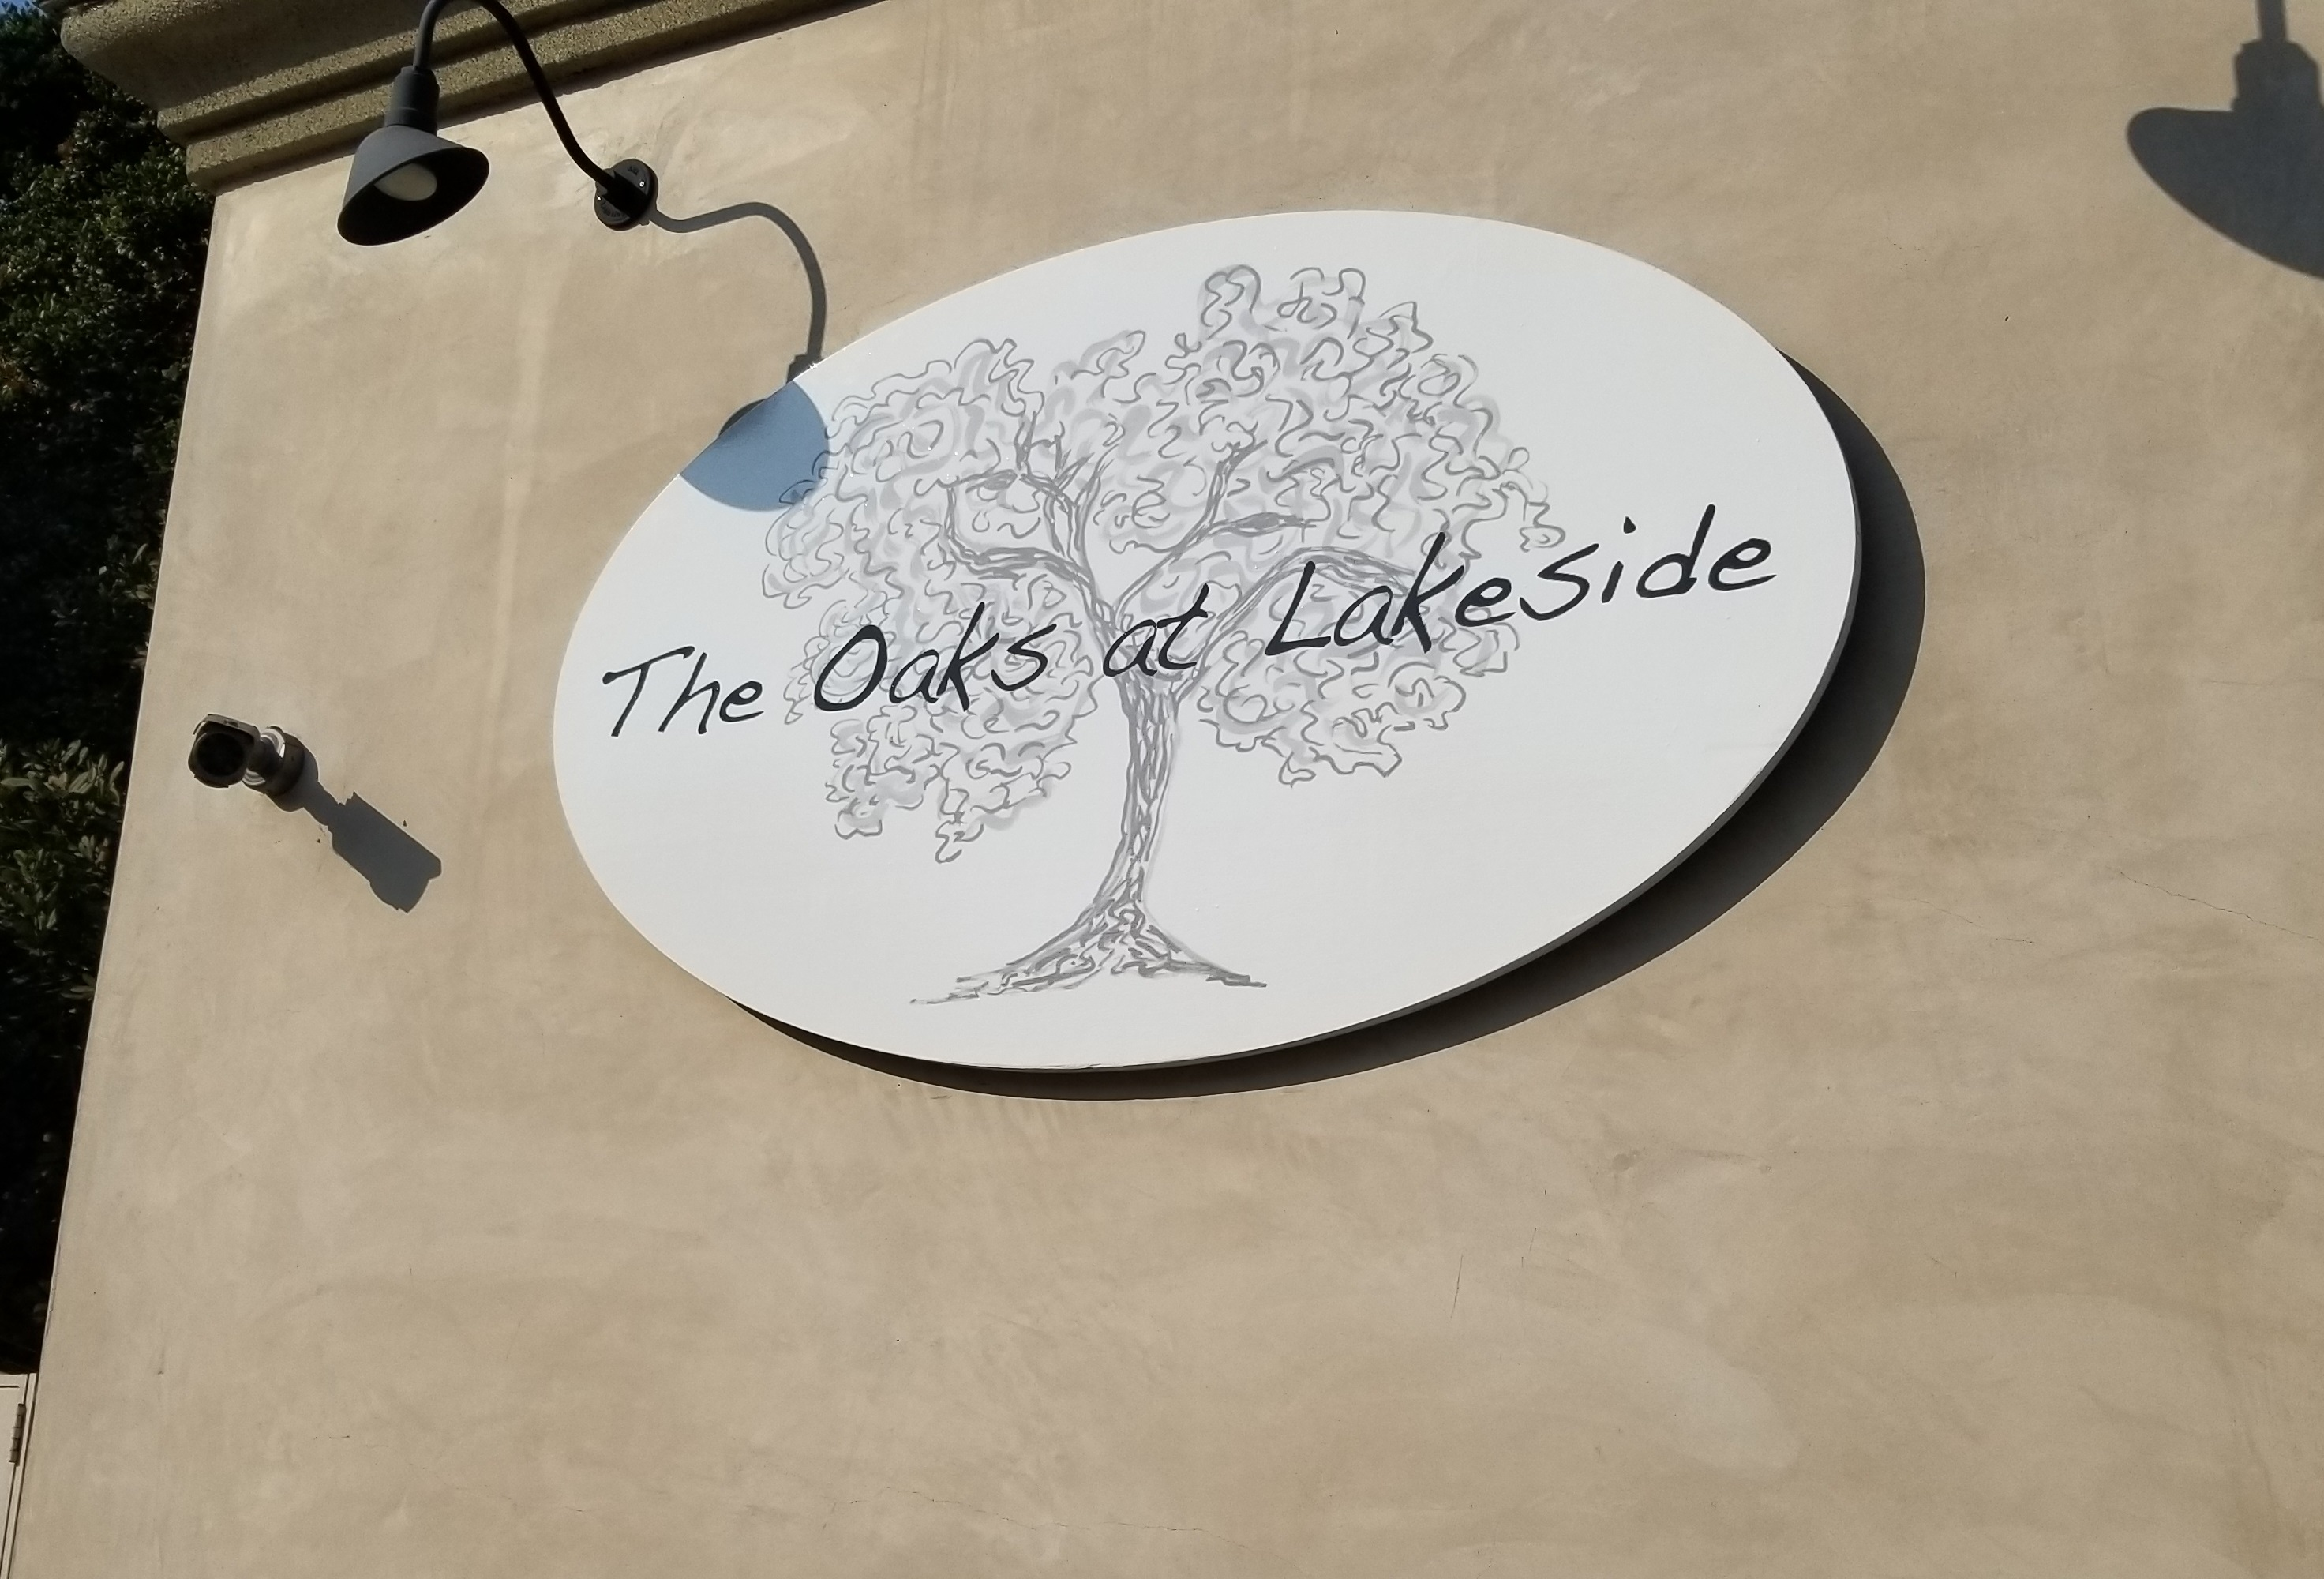 This is our custom restaurant sign for Ventura Bouevard. It shows the new branding of this beautiful Encino restaurant. The Oaks at Lakeside: A DLS Events Venue.